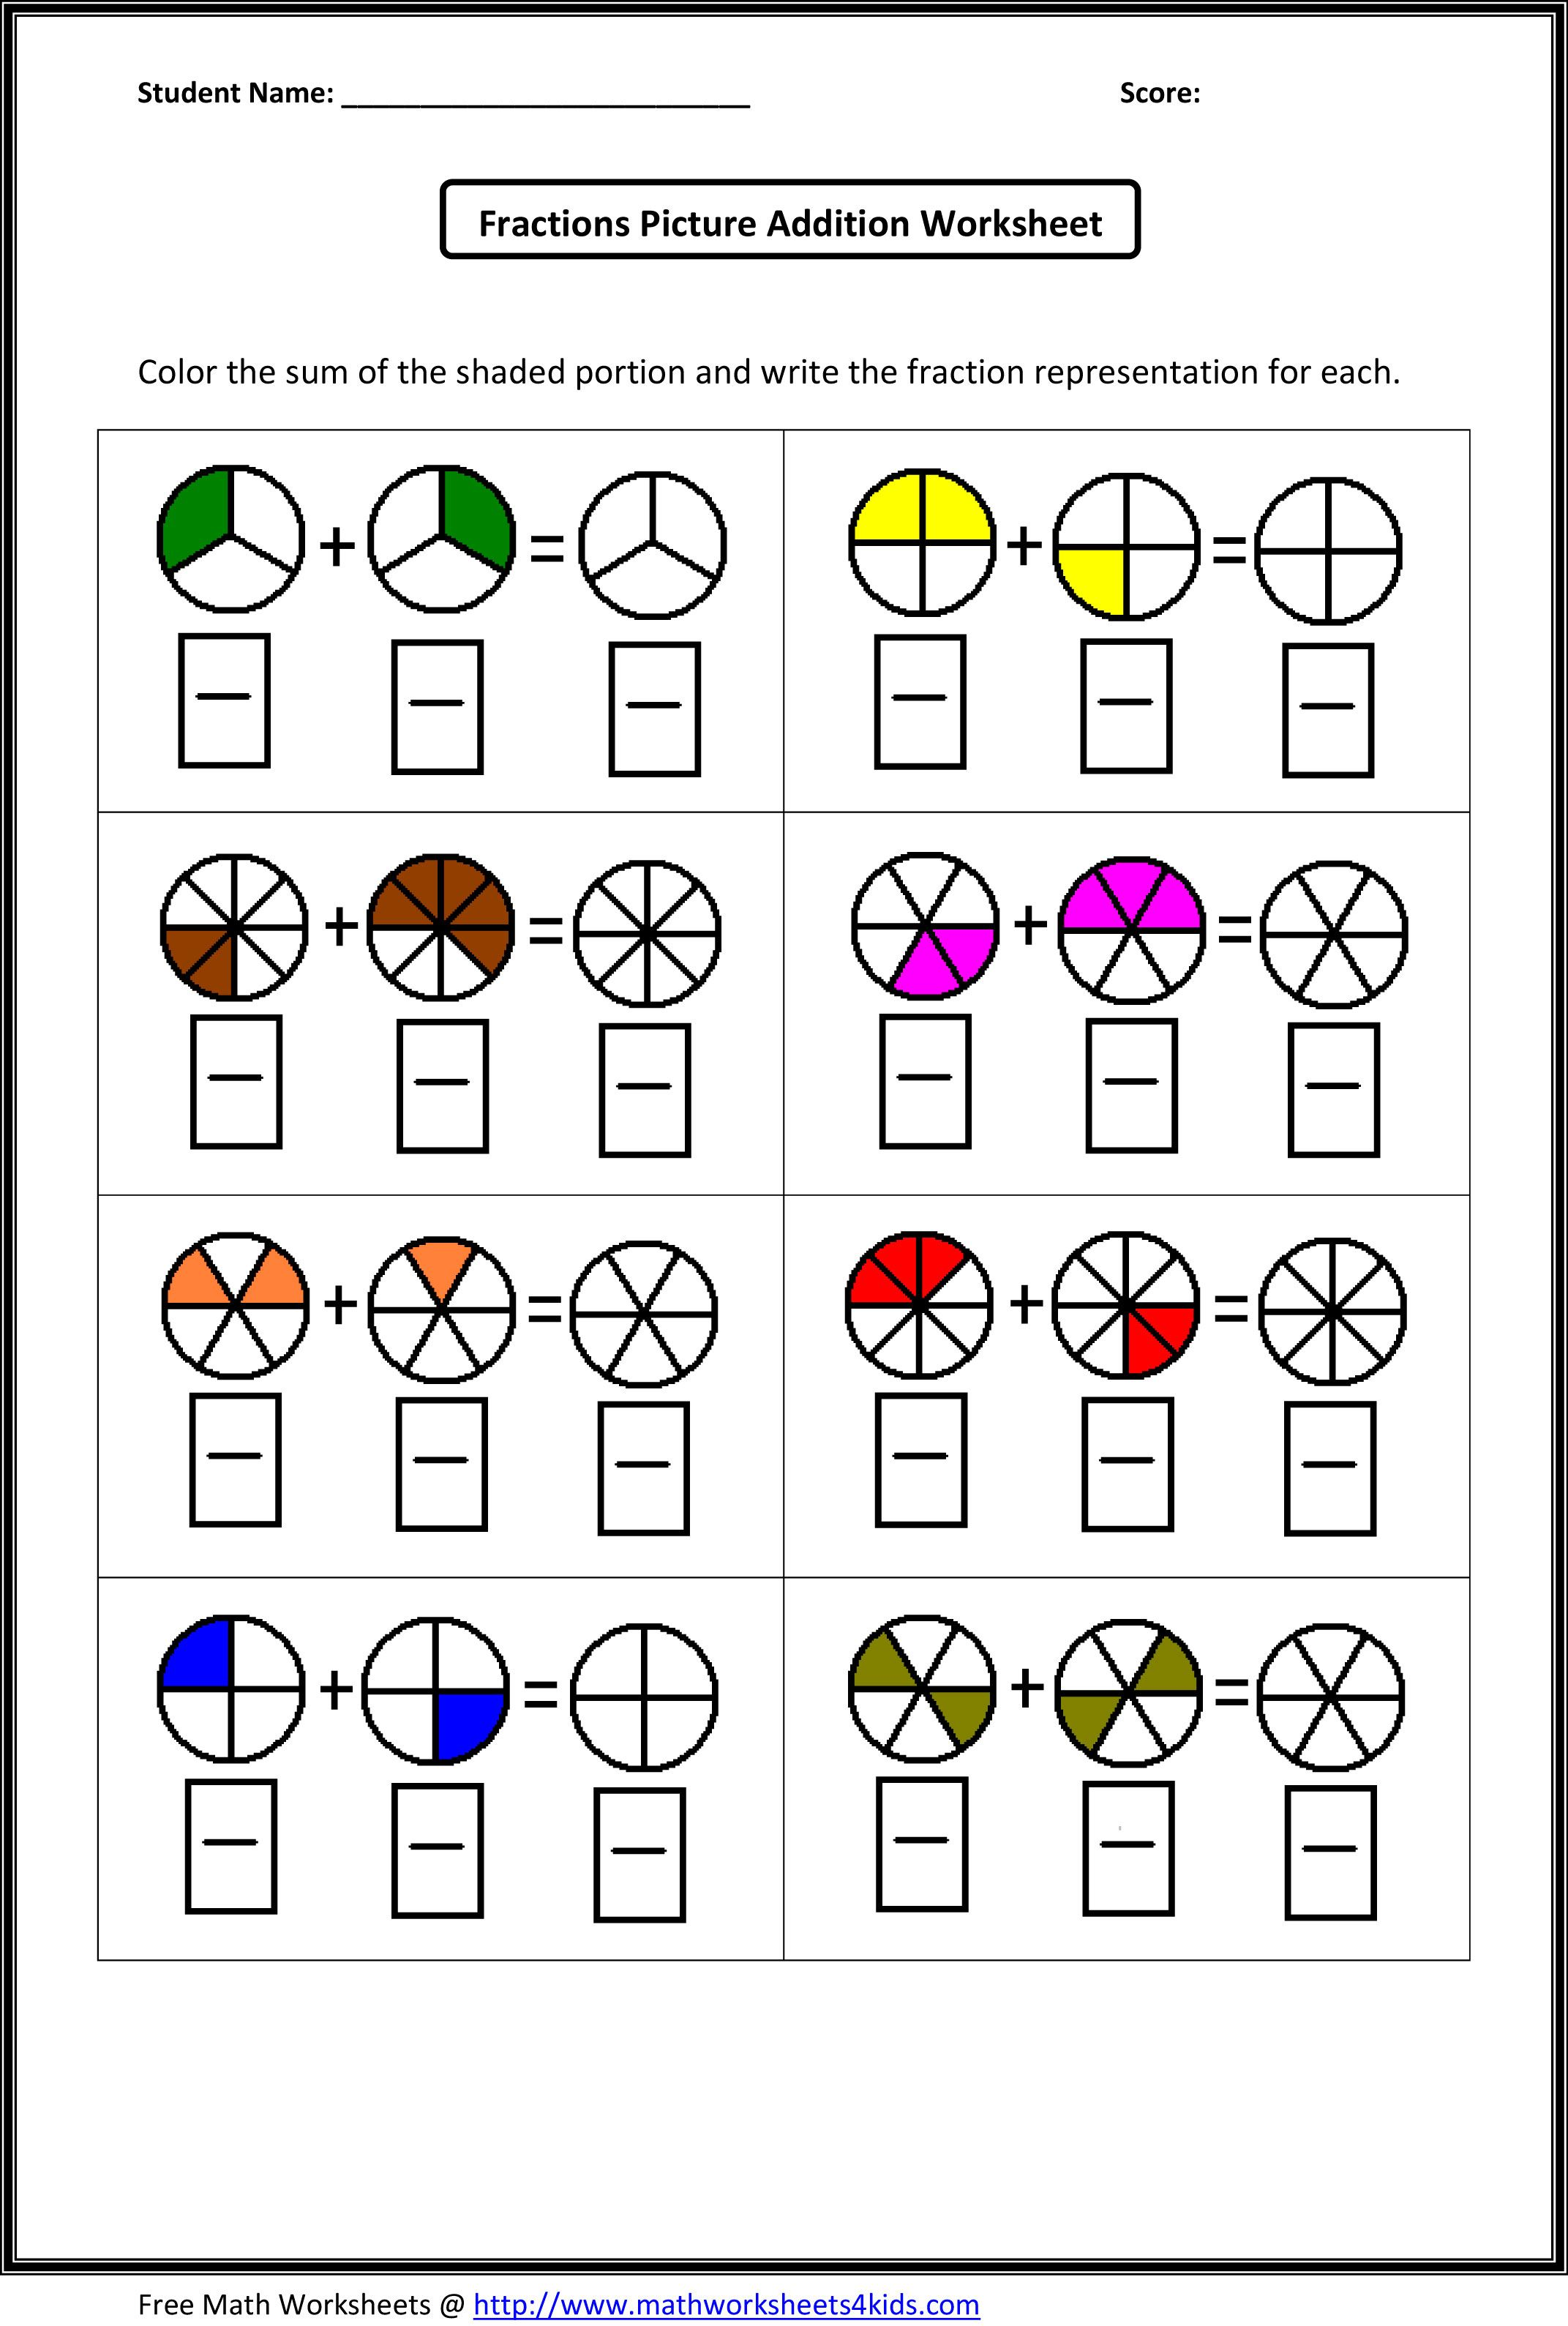 small resolution of Adding Fractions Worksheets   Fractions worksheets